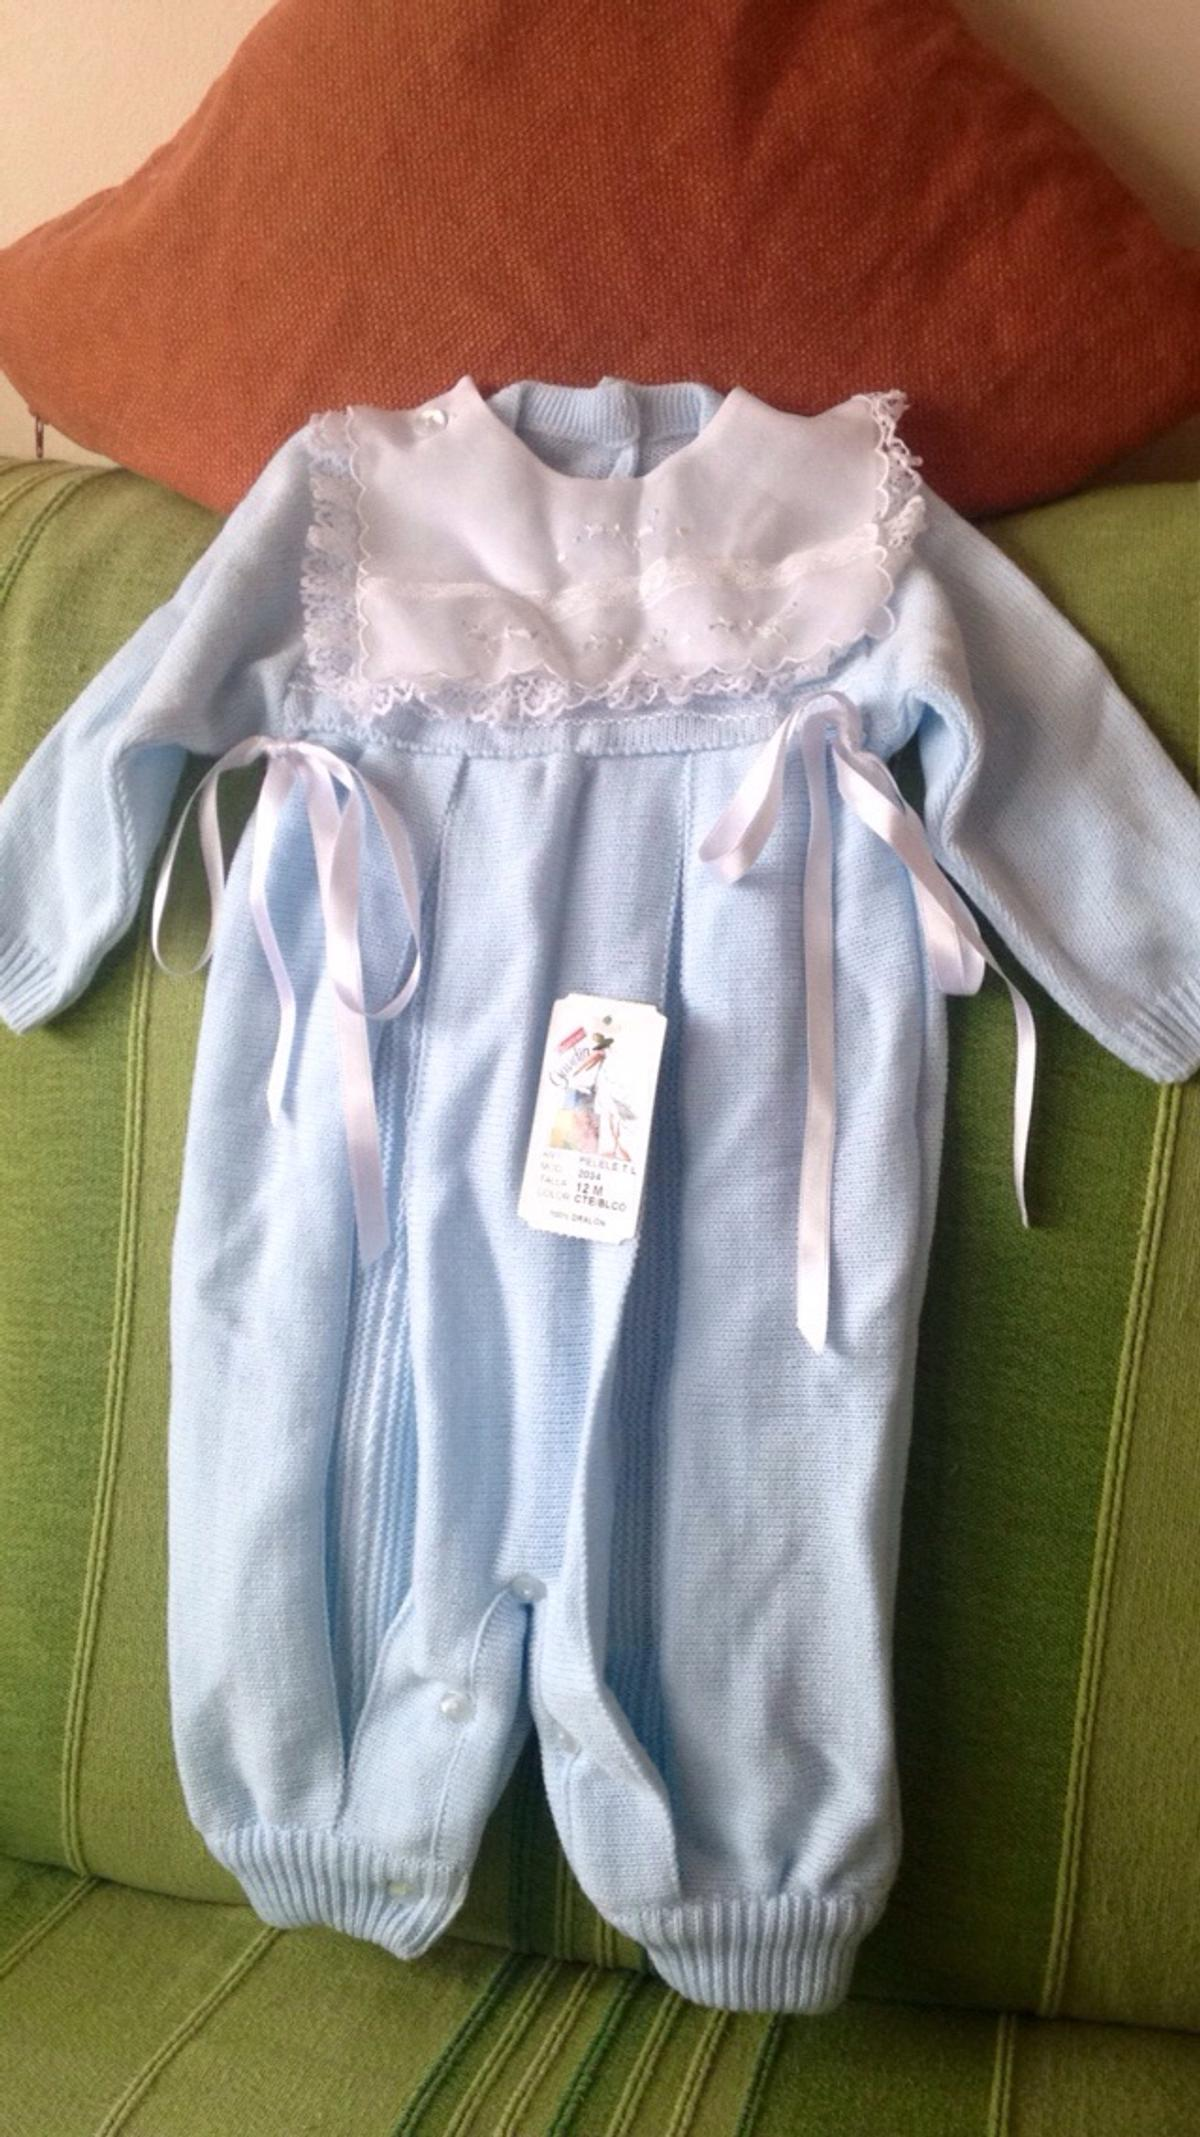 15d612f28 Gavidia Spanish Romany baby clothes in EN4 London for £3.50 for sale ...